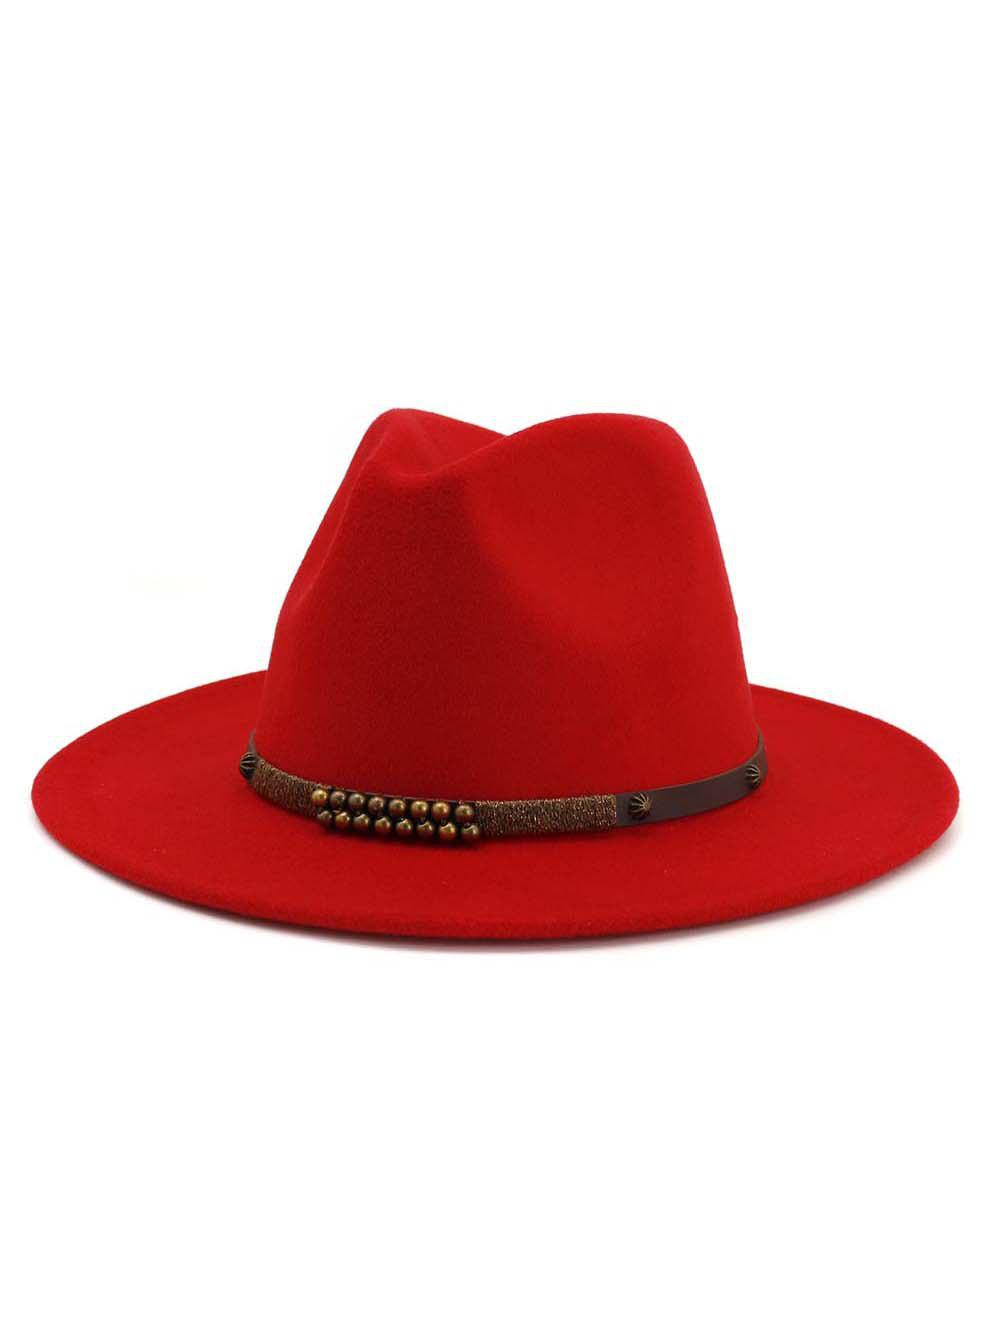 Hot Rivet Winter Woolen Jazz Classic Flat-brimmed Hat